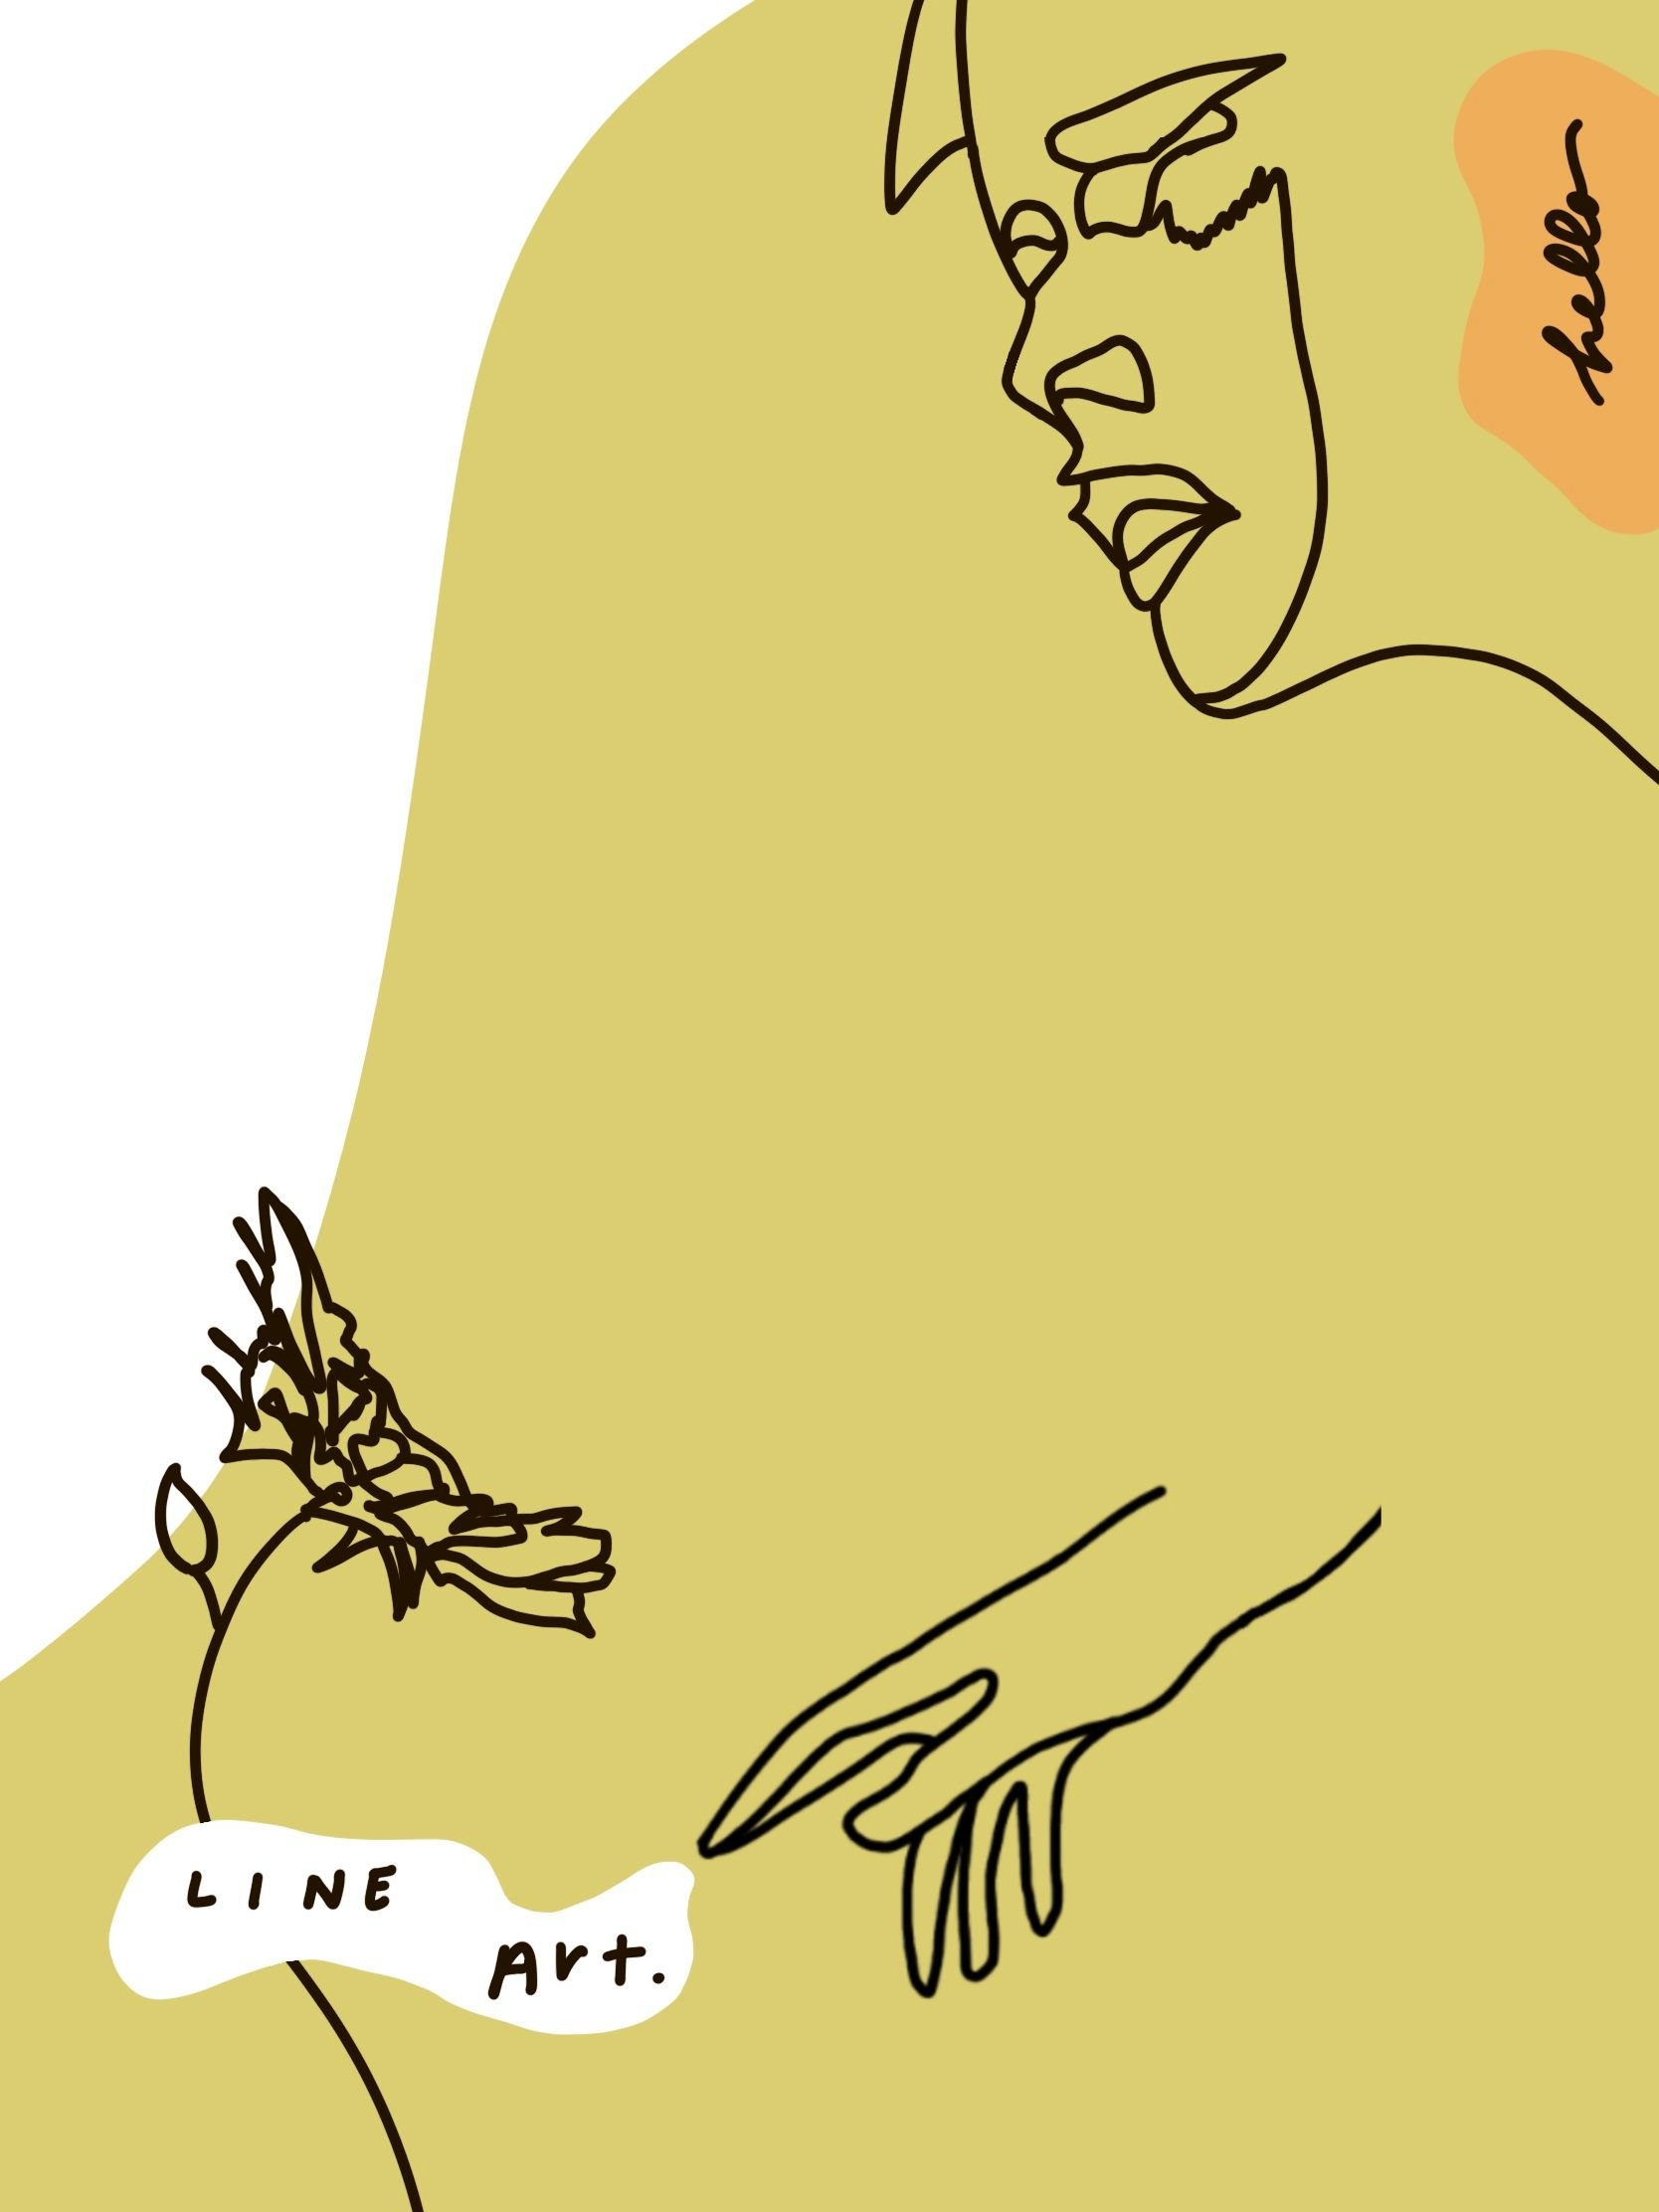 Artwork depicting a person's hand reaching for a flower